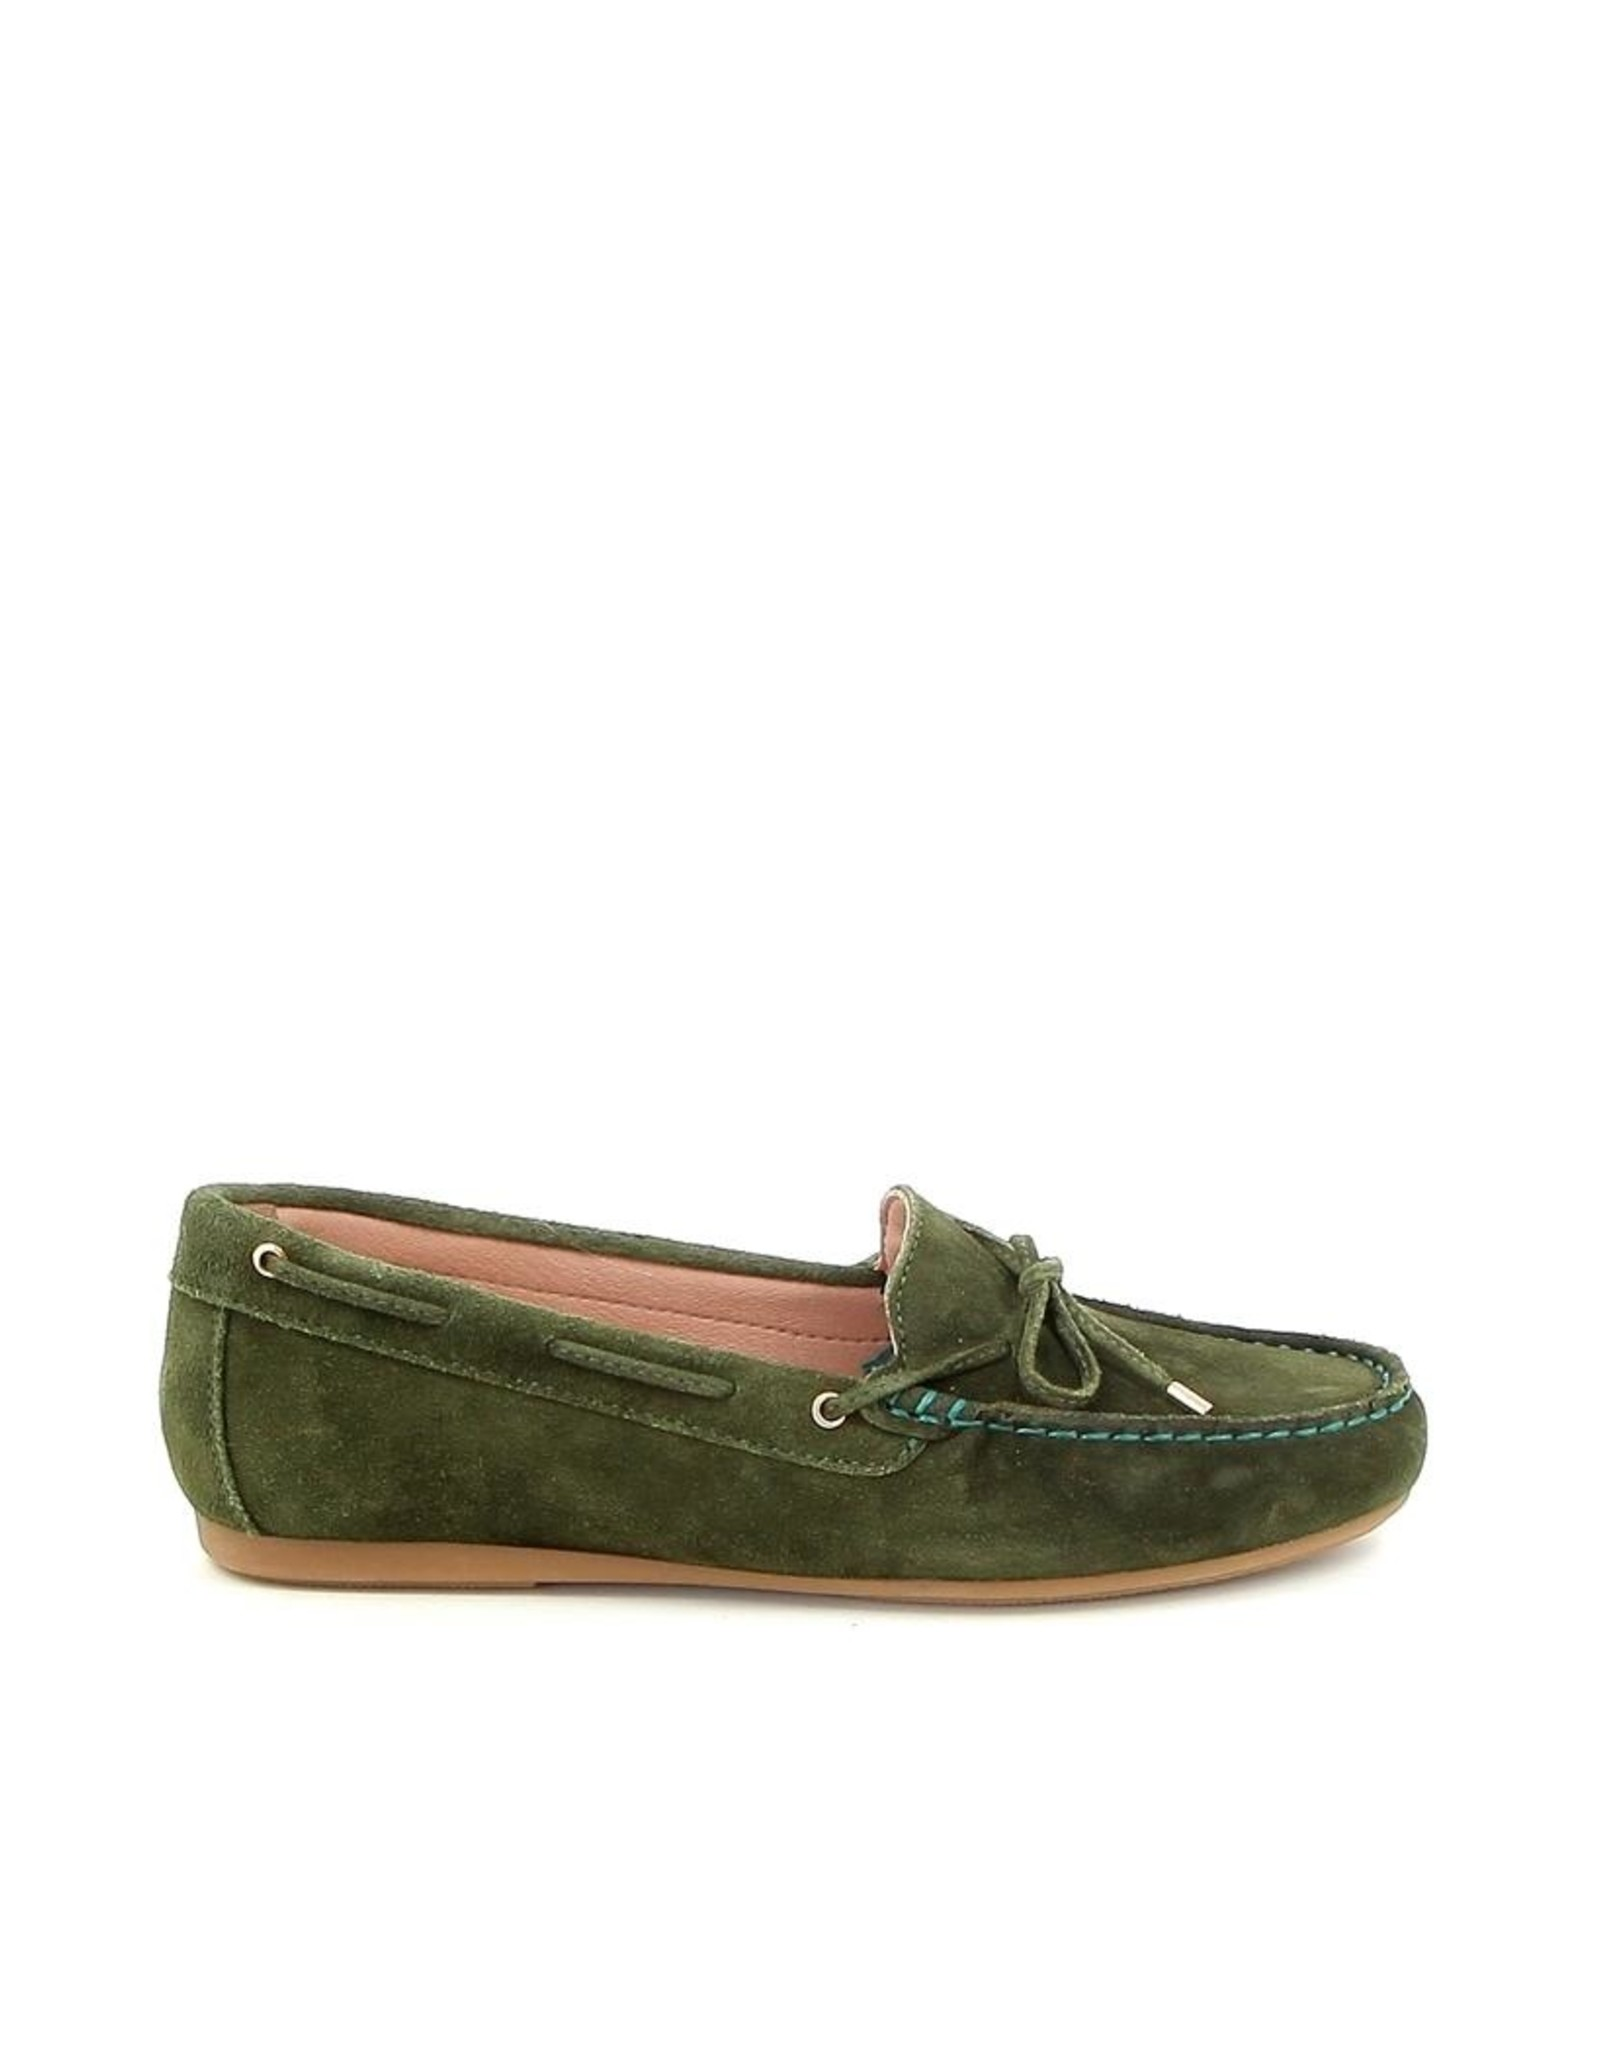 Manexco Mocassin army green